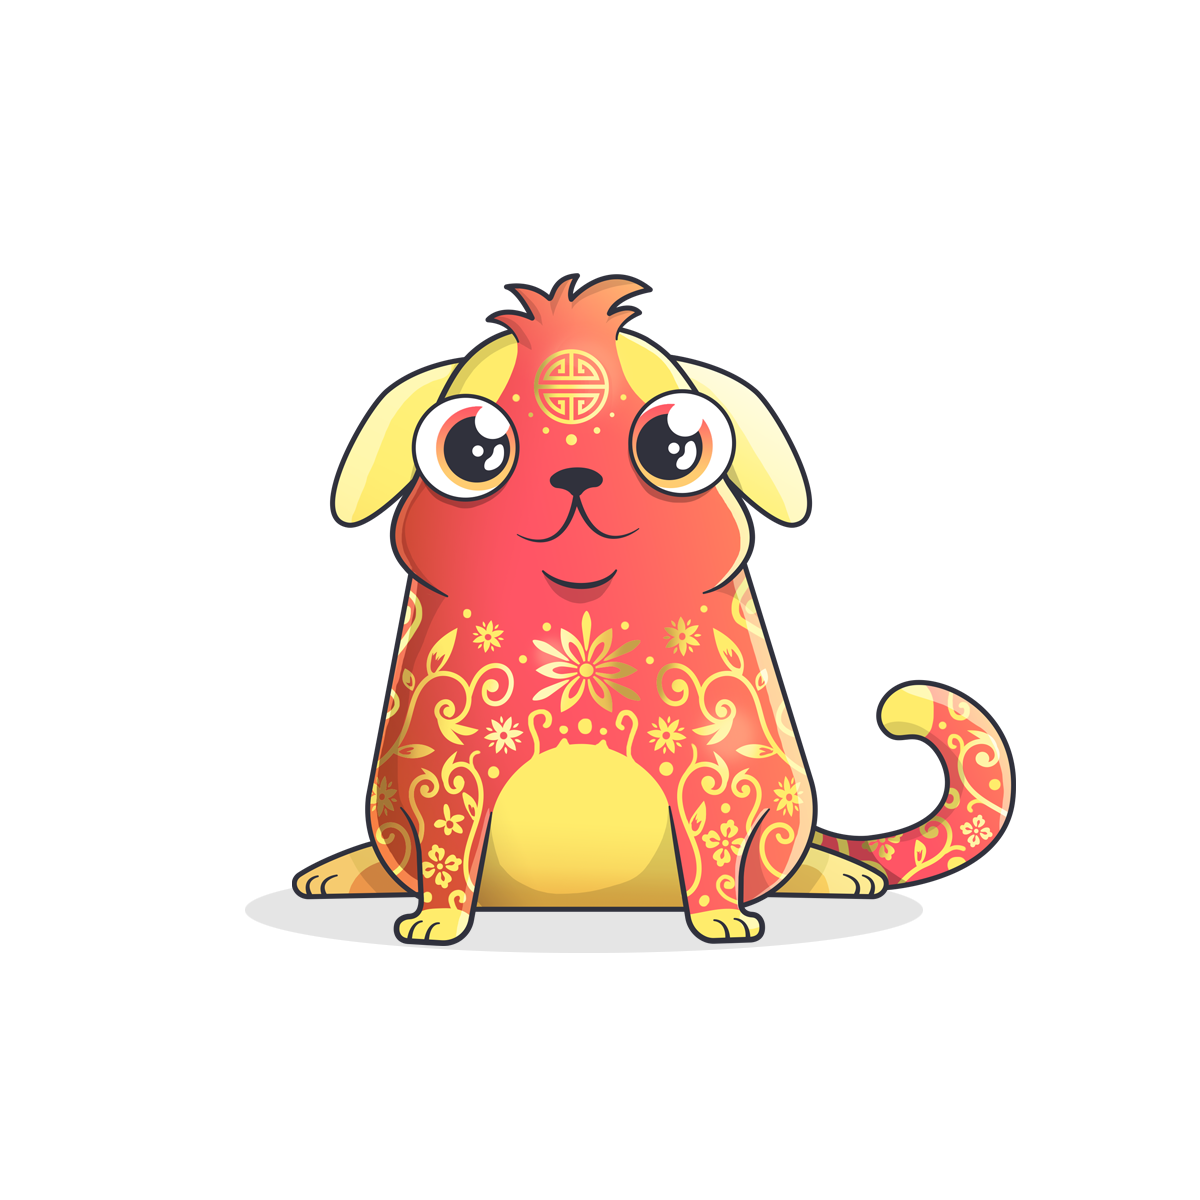 cryptokitty #588347